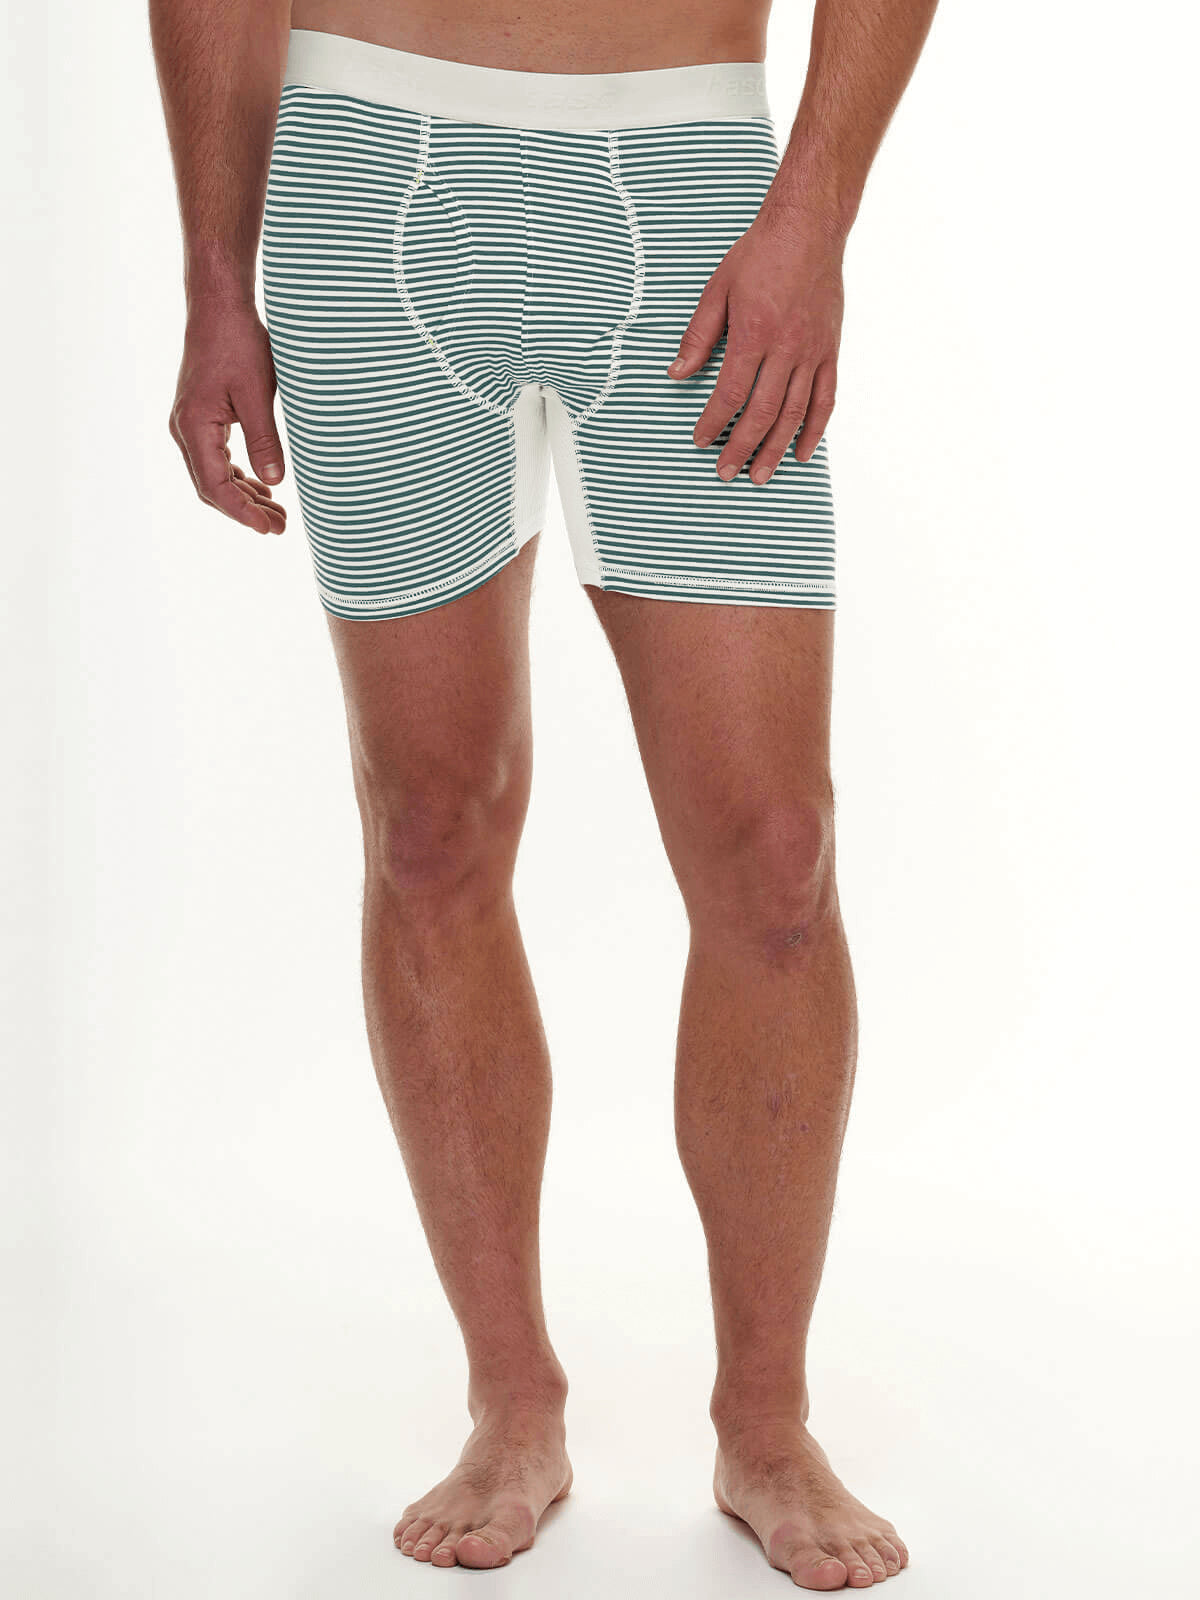 Elevated Boxer Brief - tasc Performance (Evergreen/Ivory)(Kit)